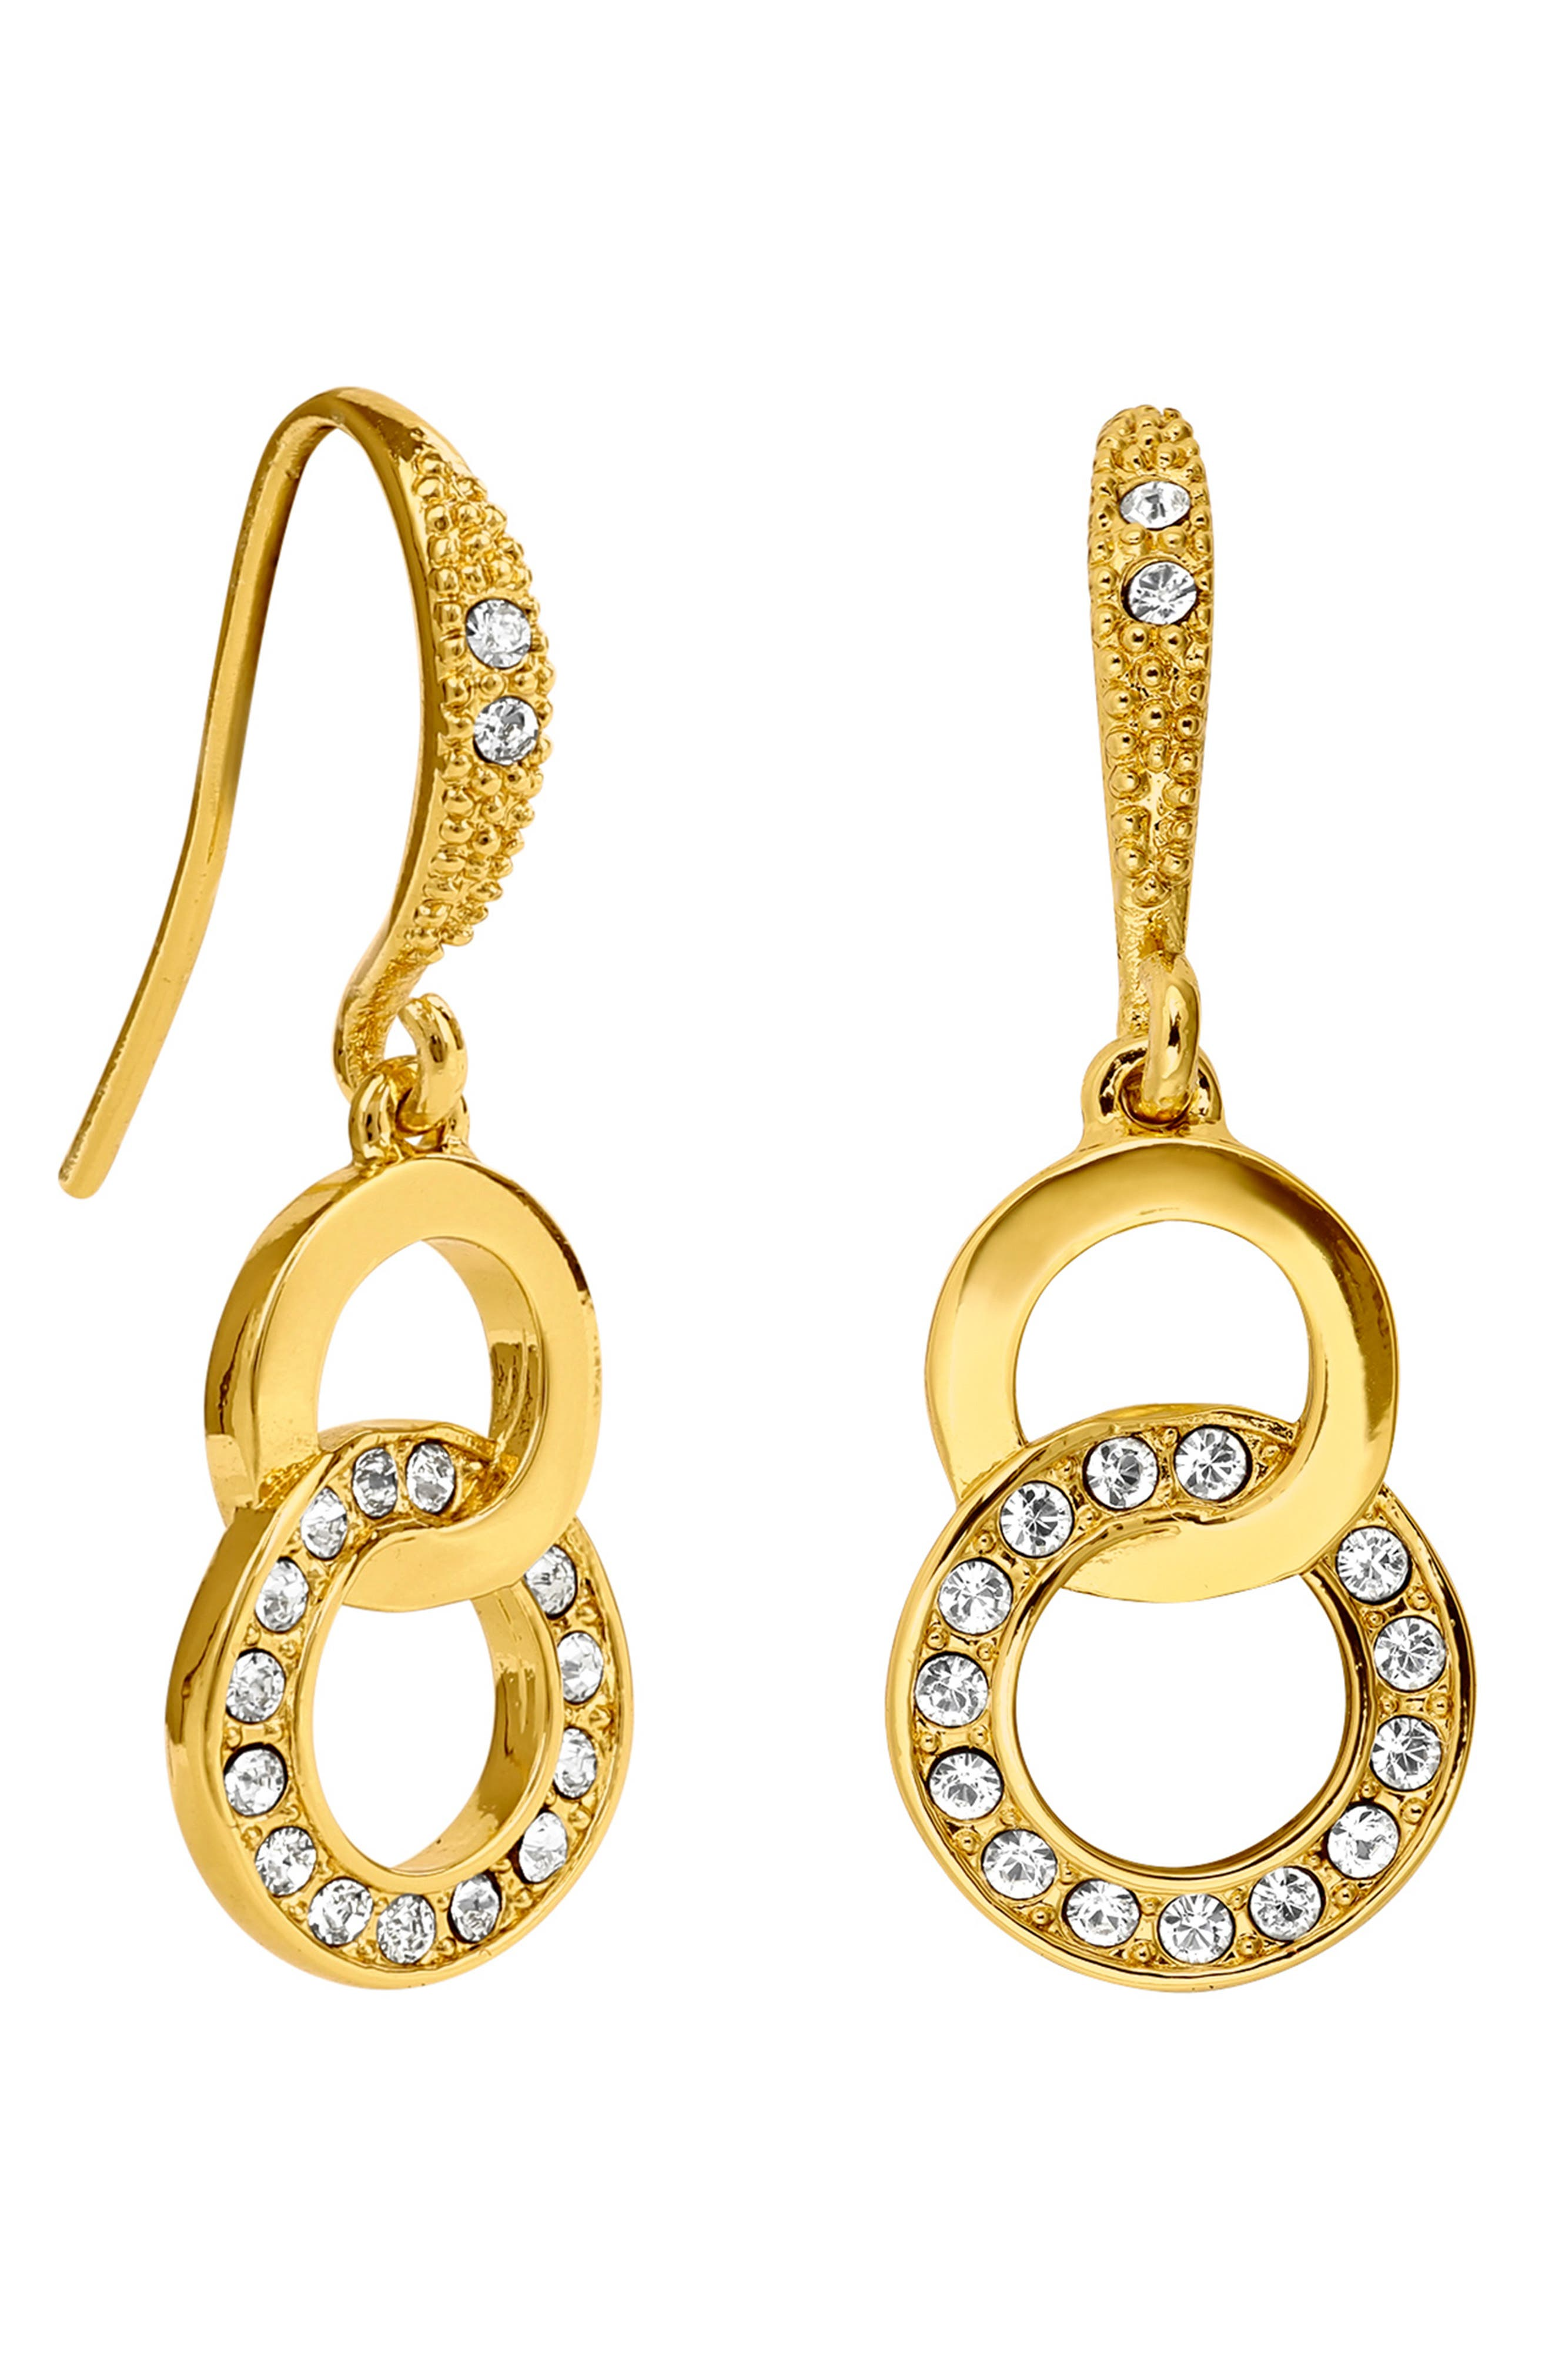 ADORE Interlocking Pave Rings Drop Earrings in Gold